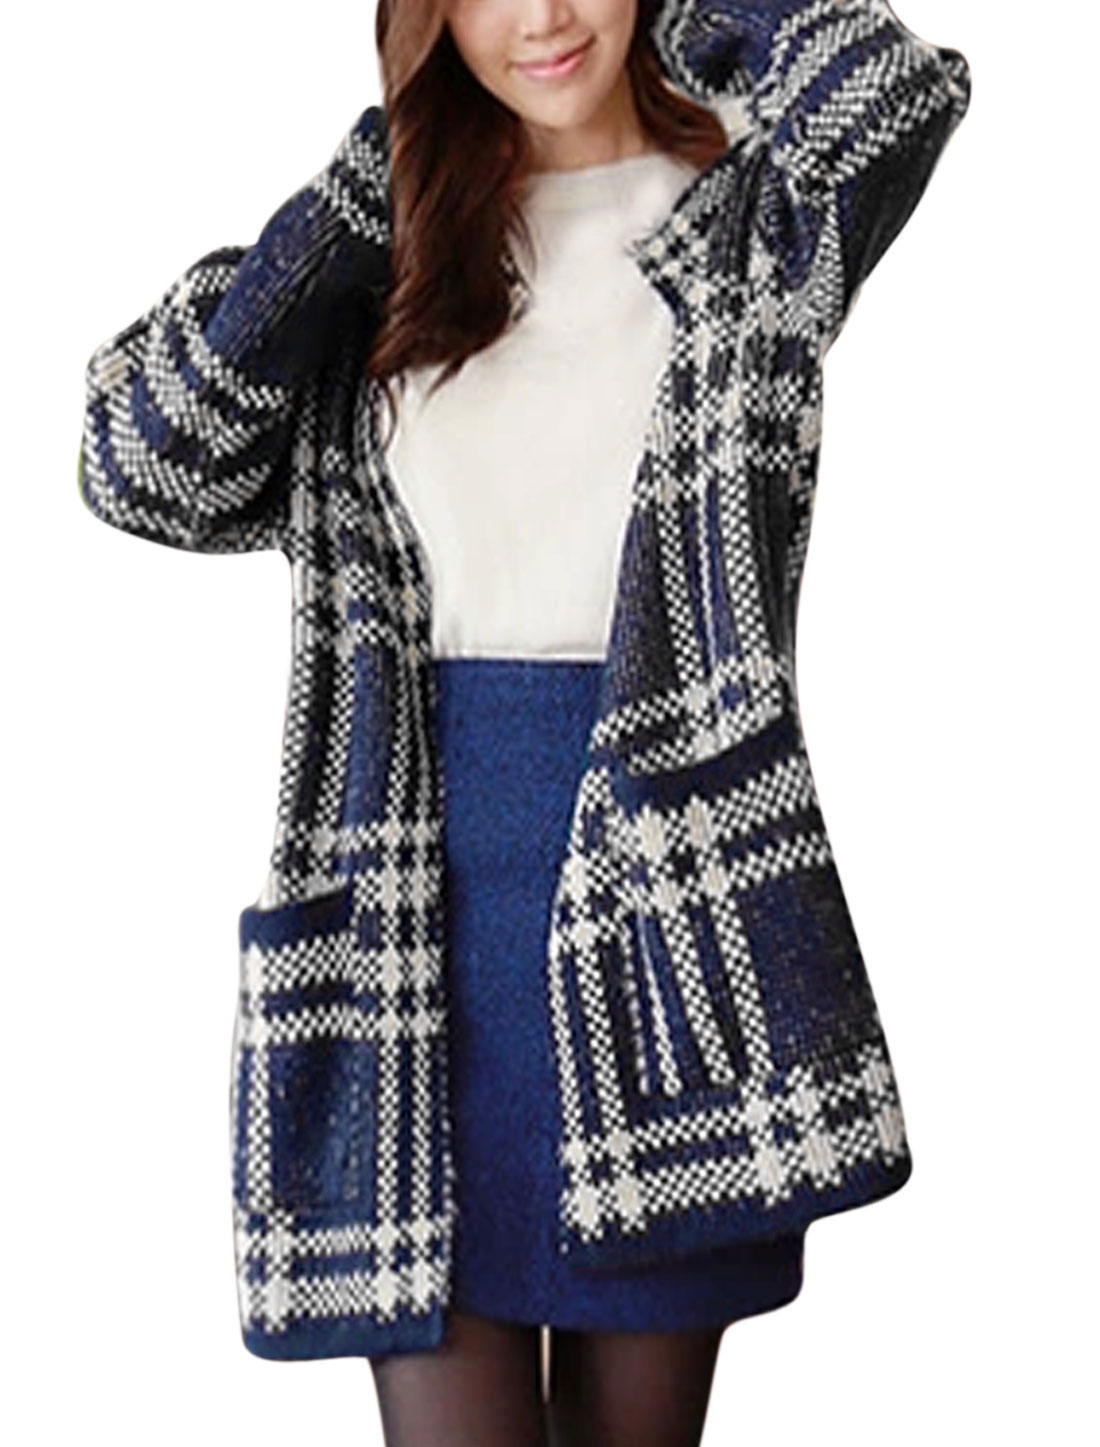 Lady Plaids Pattern Front Opening Casual Sweater Cardigan Navy Blue S